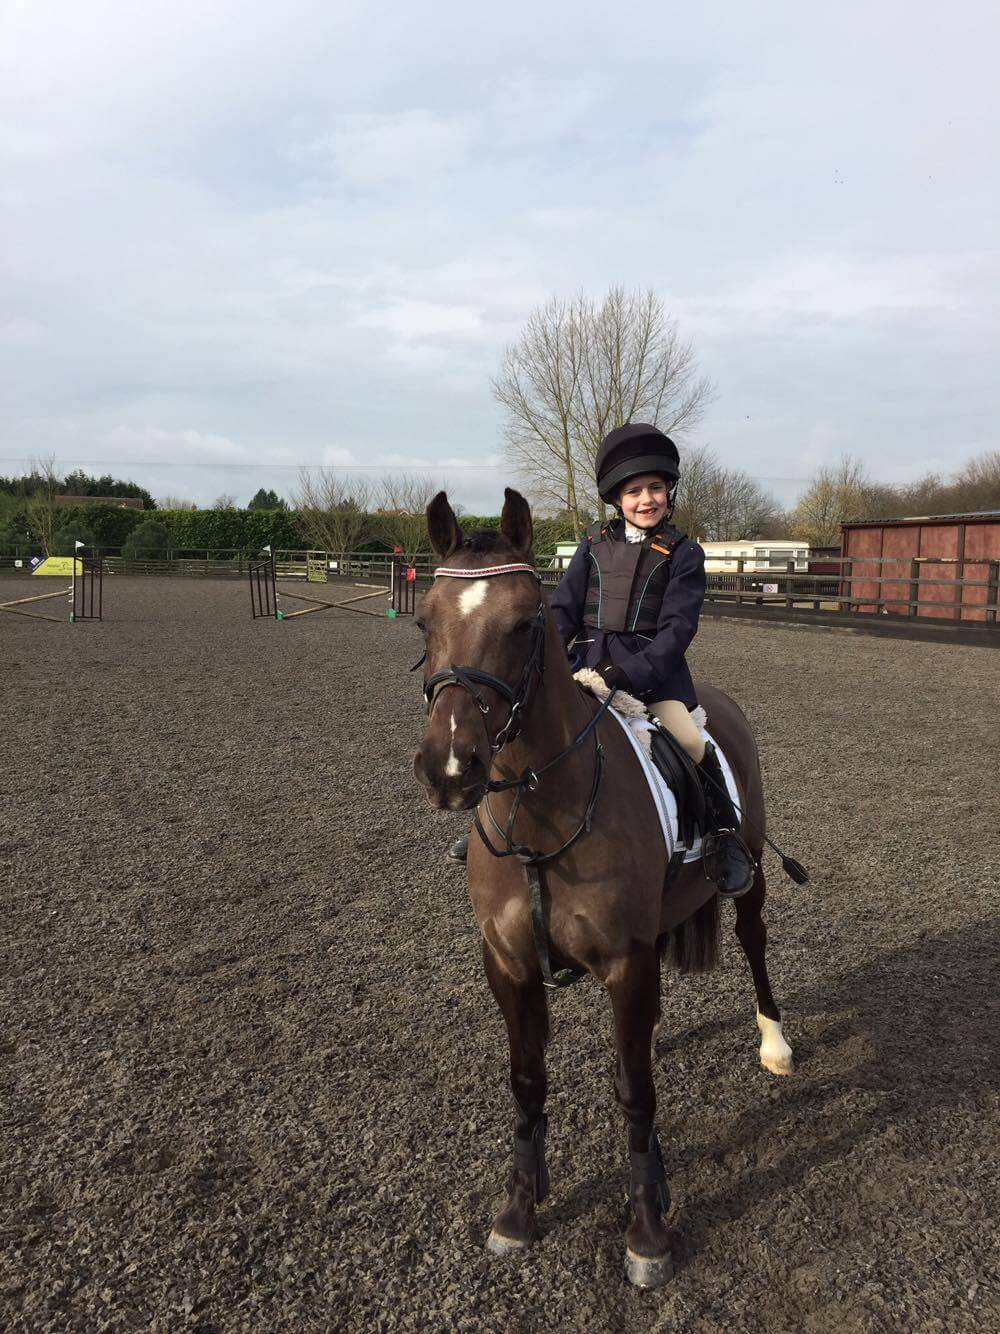 Maisie Farnham and Pony Magic sporting their luxury, handmade Crystal browband from PonyCouture's range of bespoke crystal browbands at a dressage test